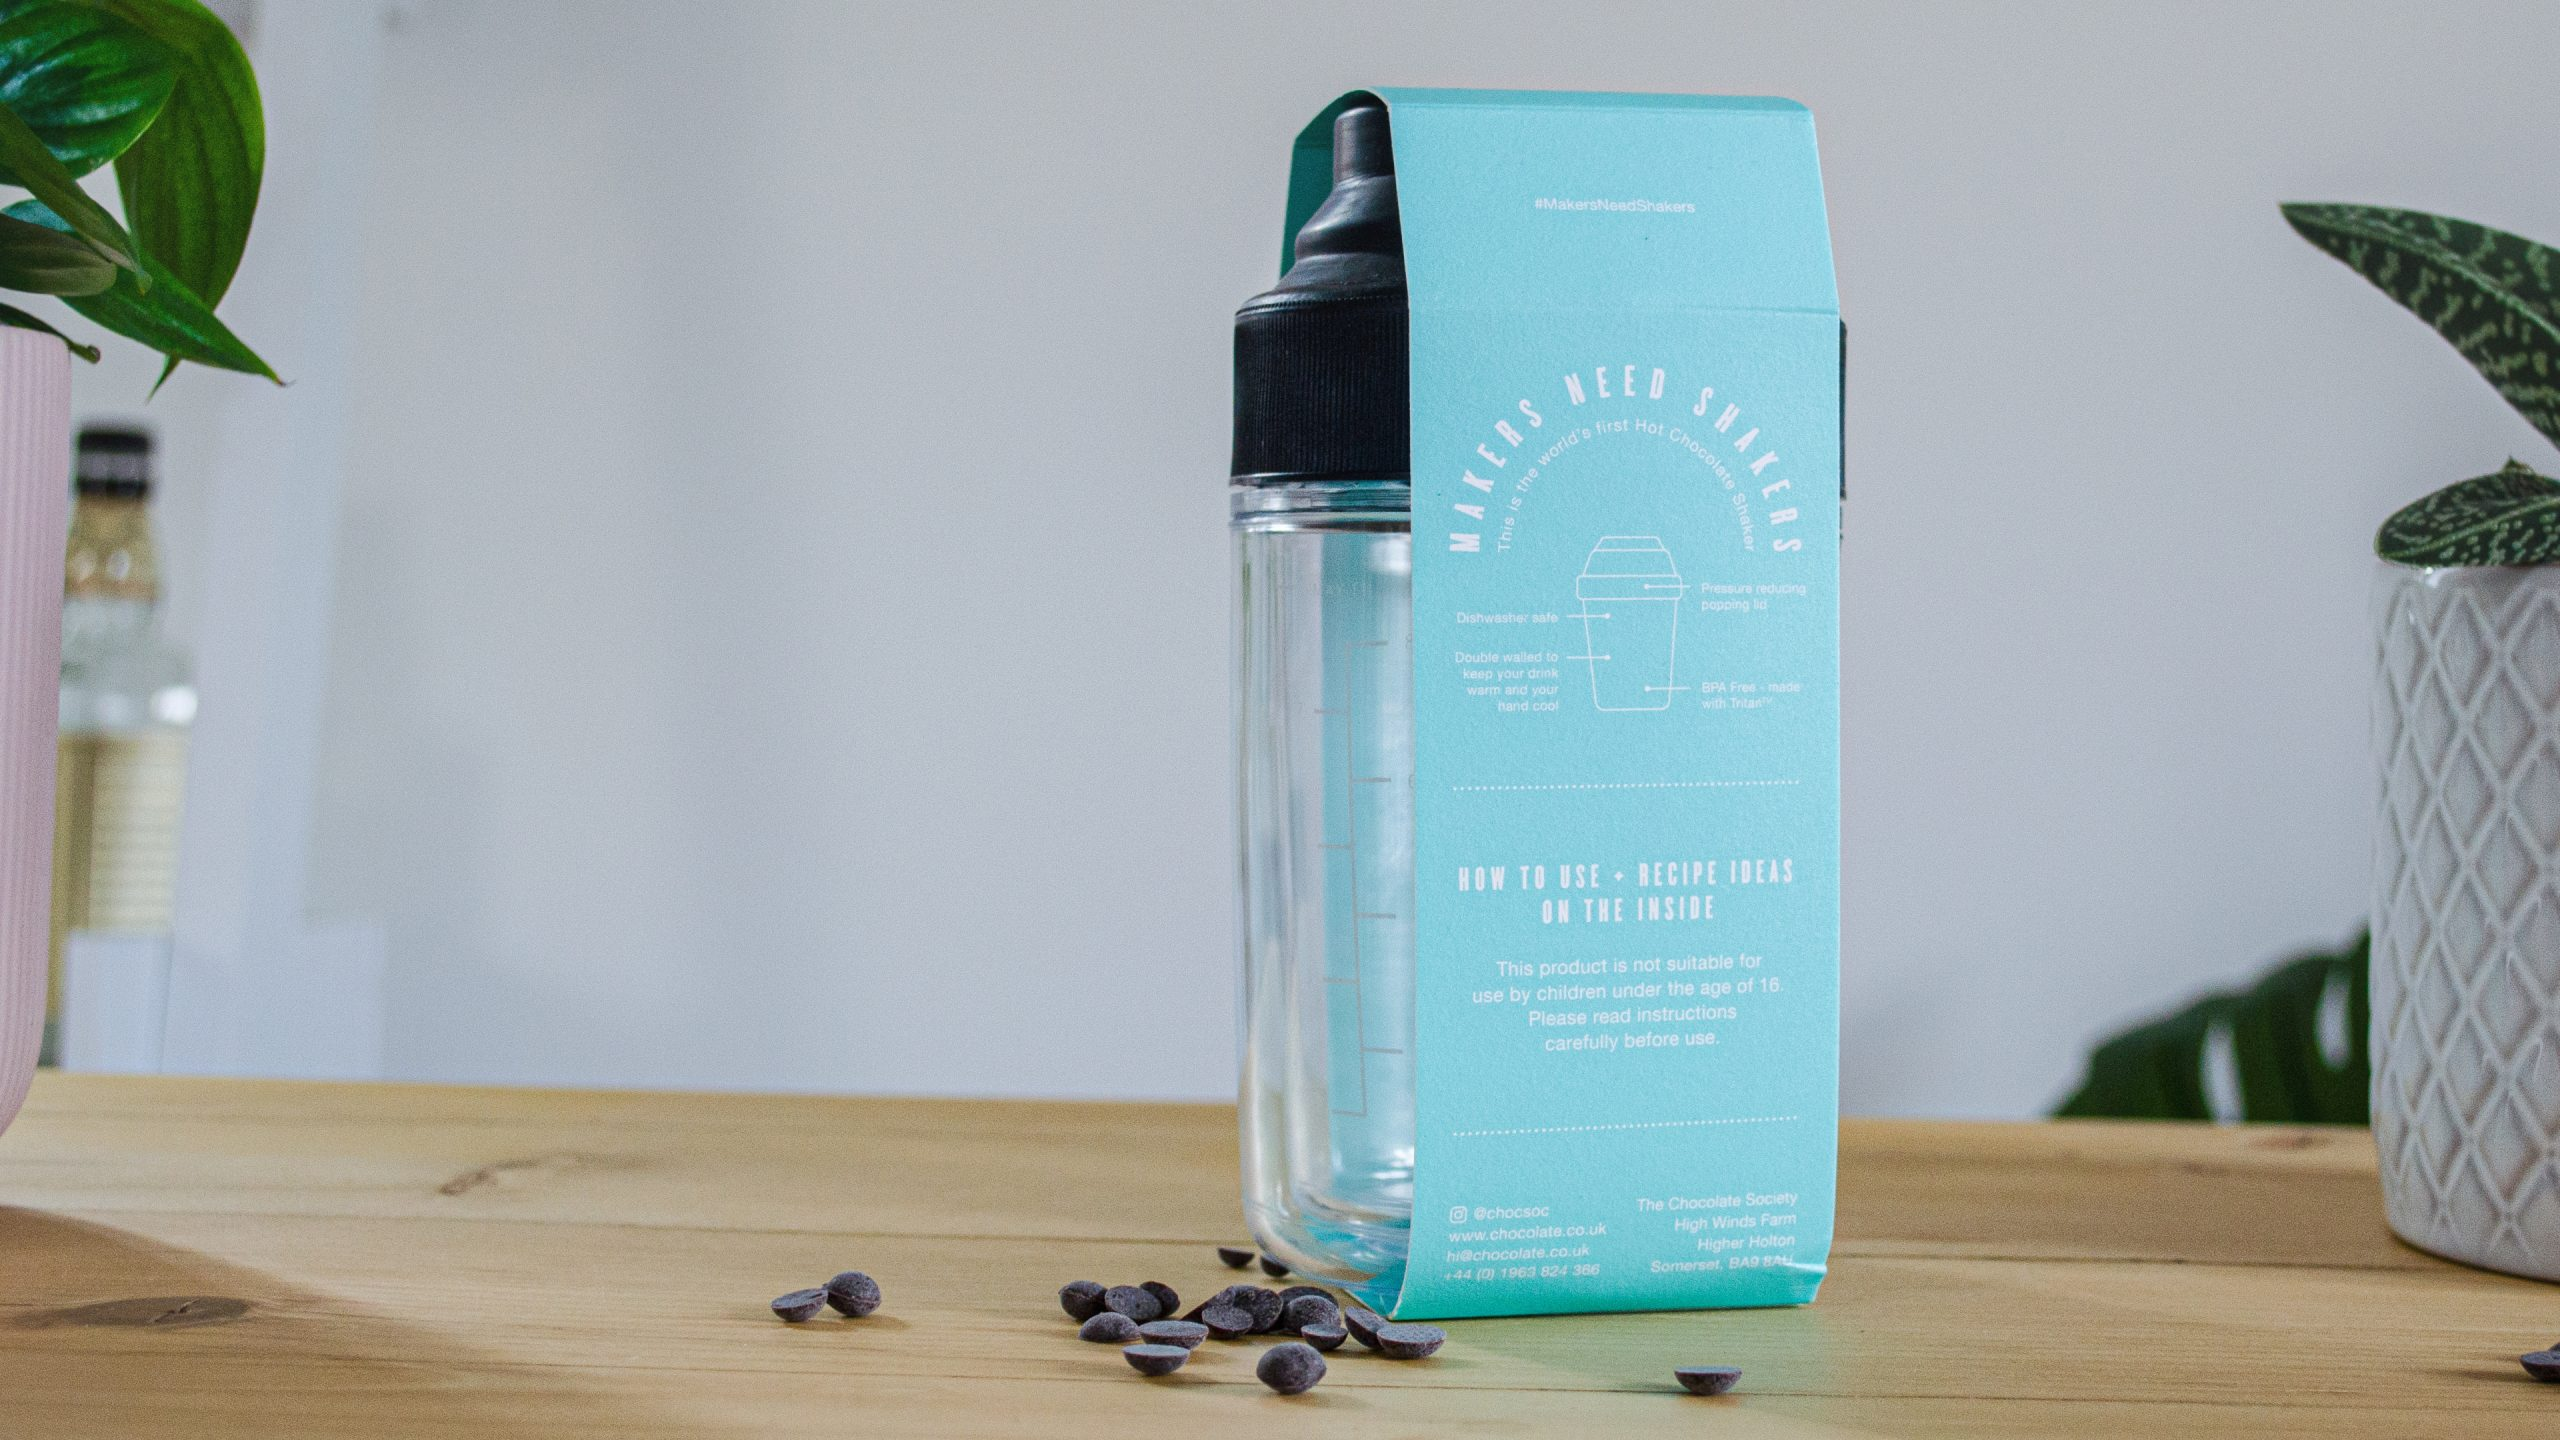 Product and packaging of world's first chocolate shaker designed by Realise